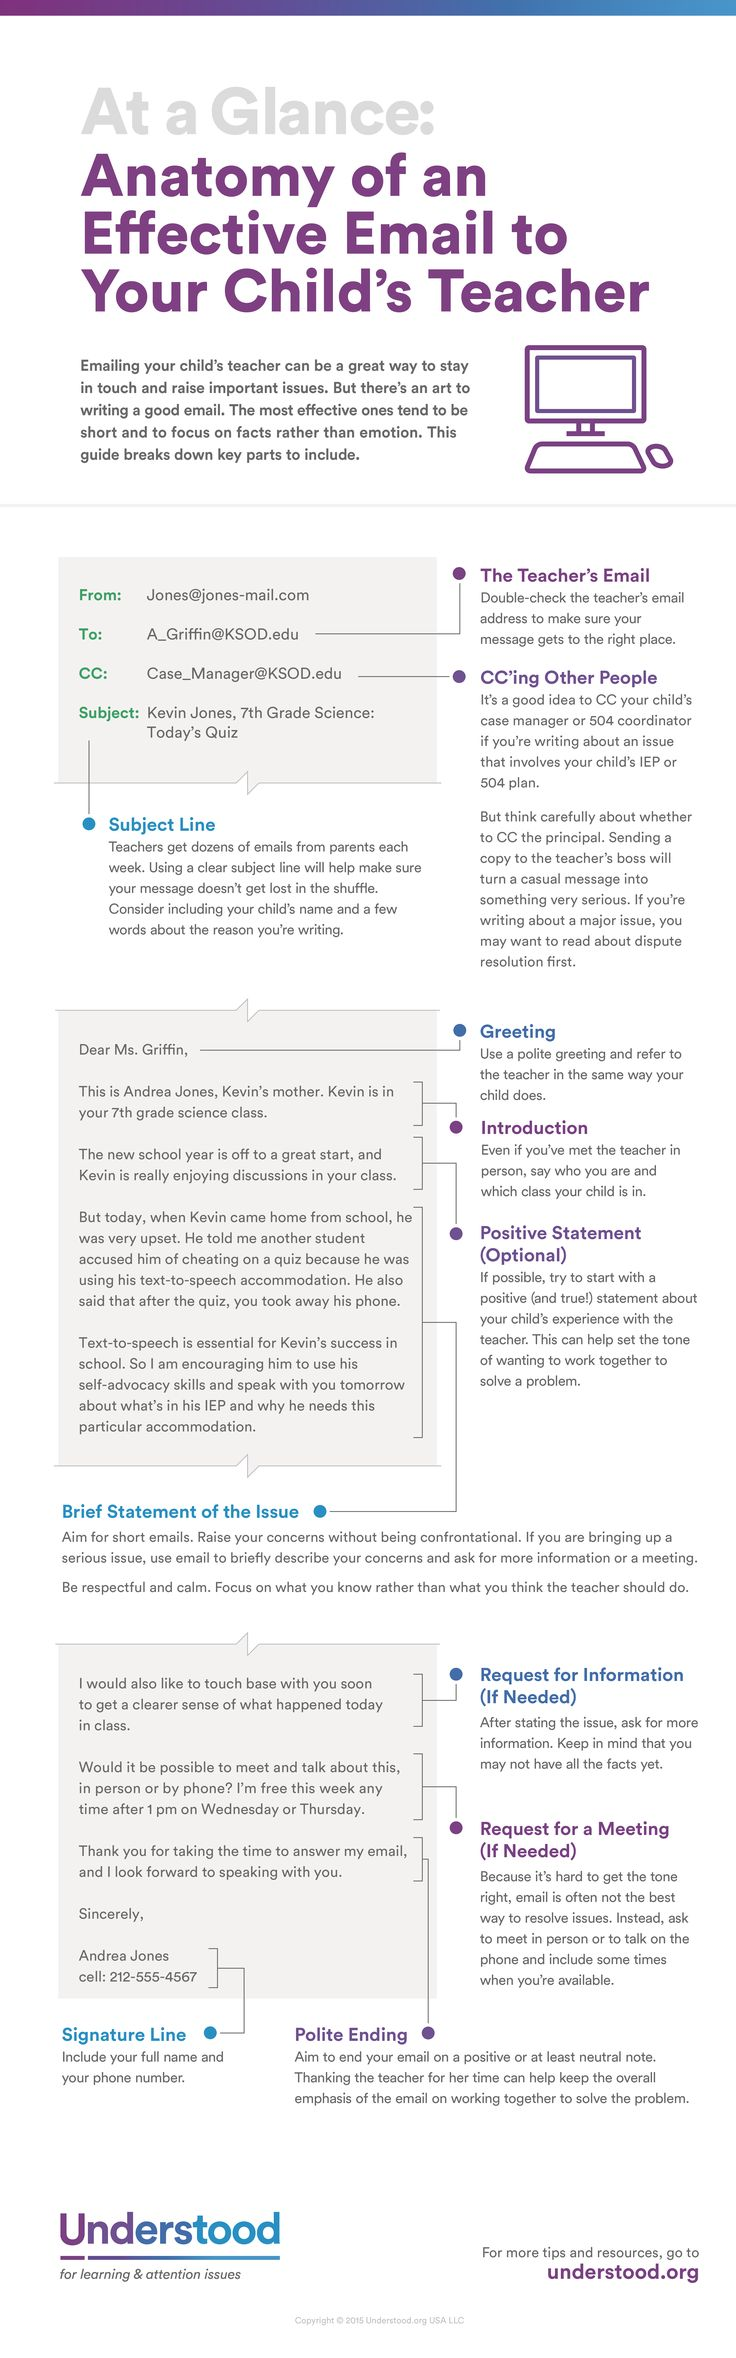 Getting ready to write an email to your child's teacher? Use this guide to see what to include to help you get the best response from the teacher. #teacher #email